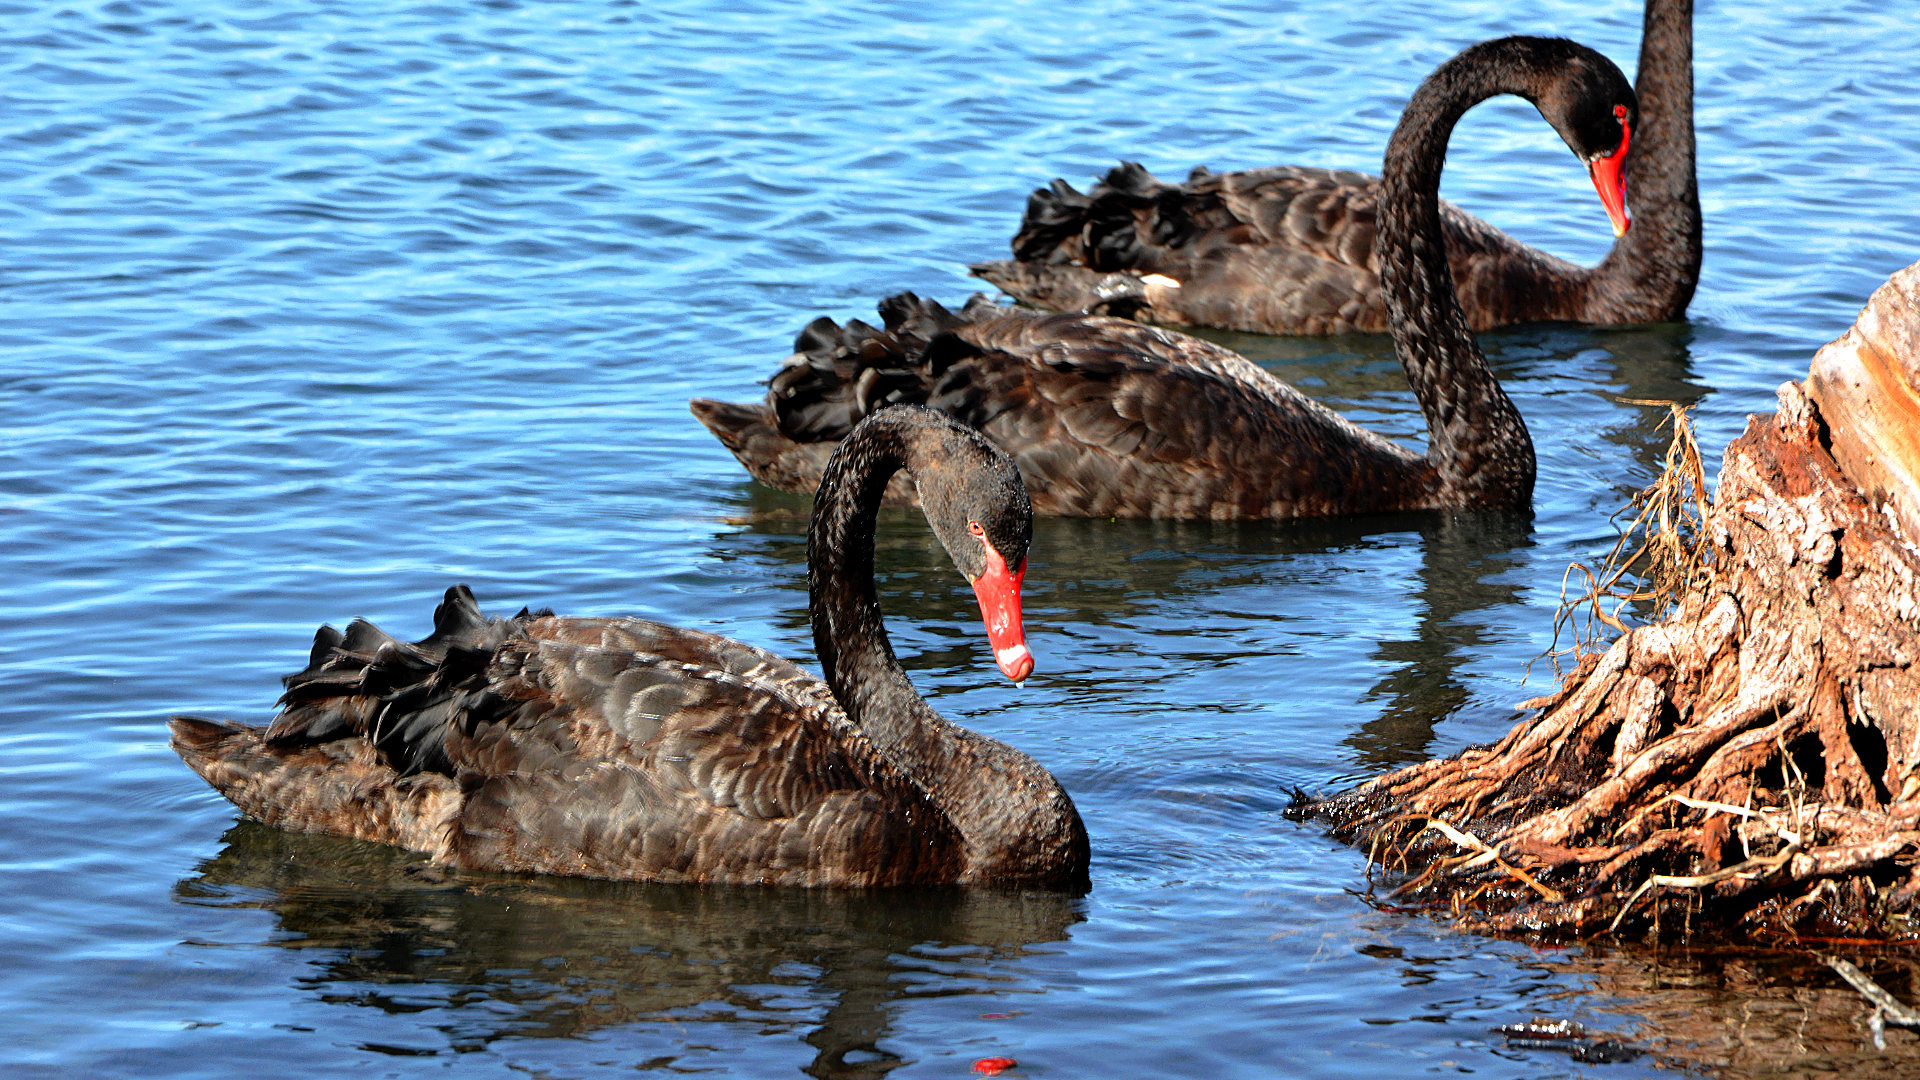 Black Swan in Perth (Foto: Sabina Schneider)